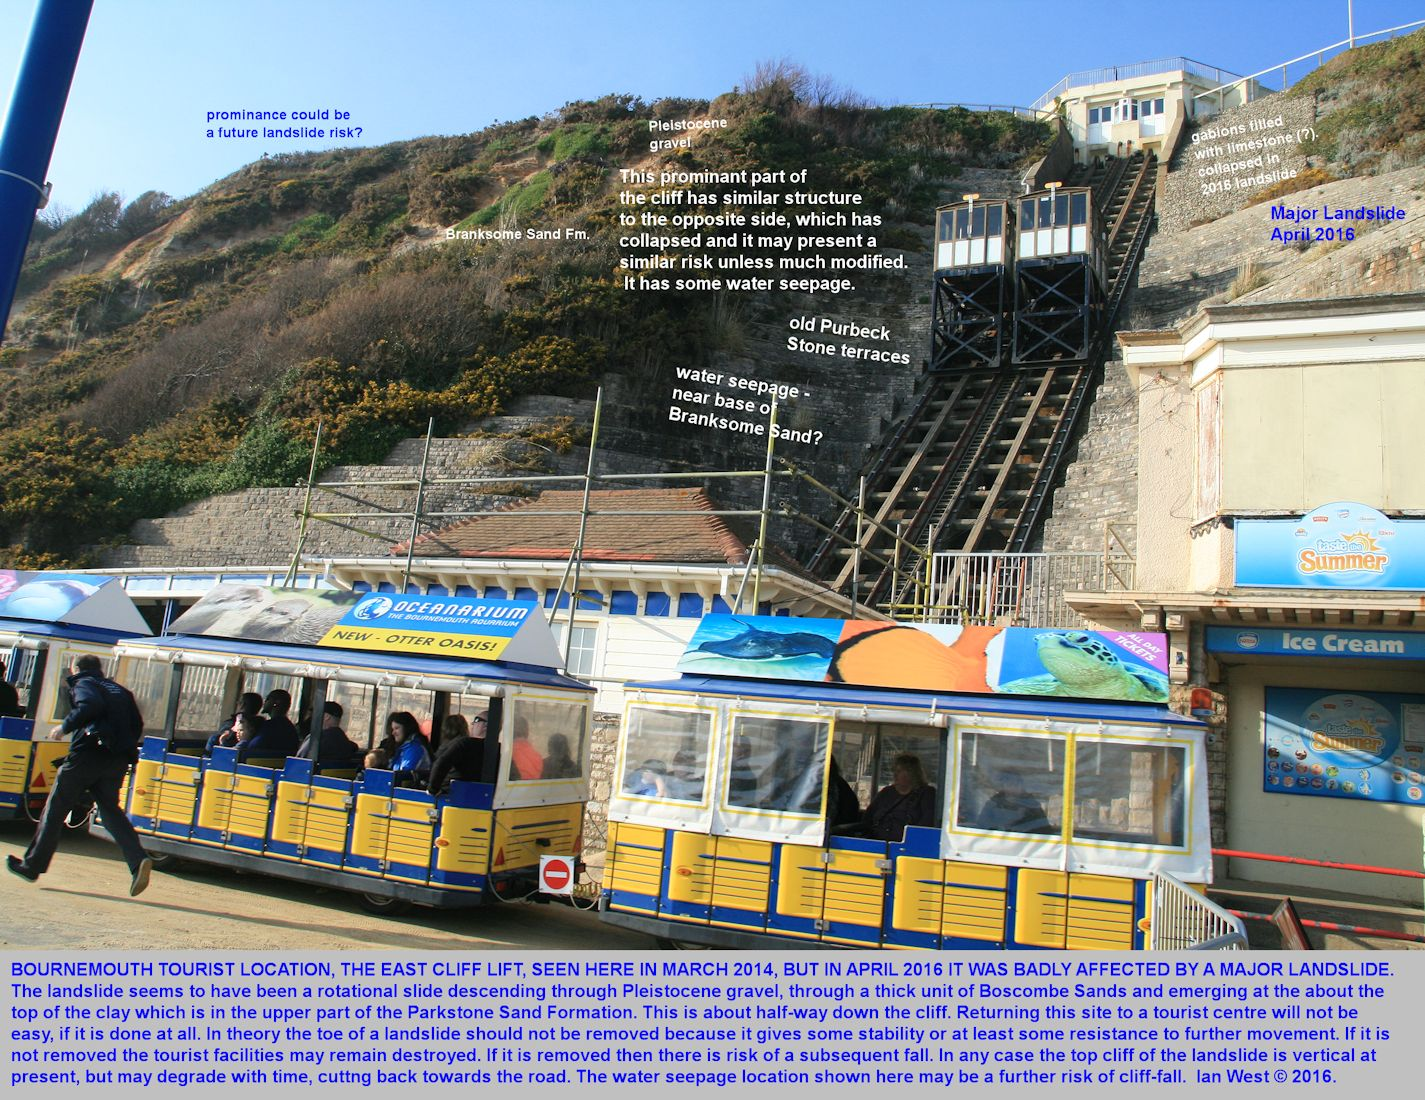 The western side of the East Cliff, Cliff Lift, Bournemouth as seen in 2014 before the major landslide here in 2016, note the water seepage from near the base of the Boscombe Sand Formation